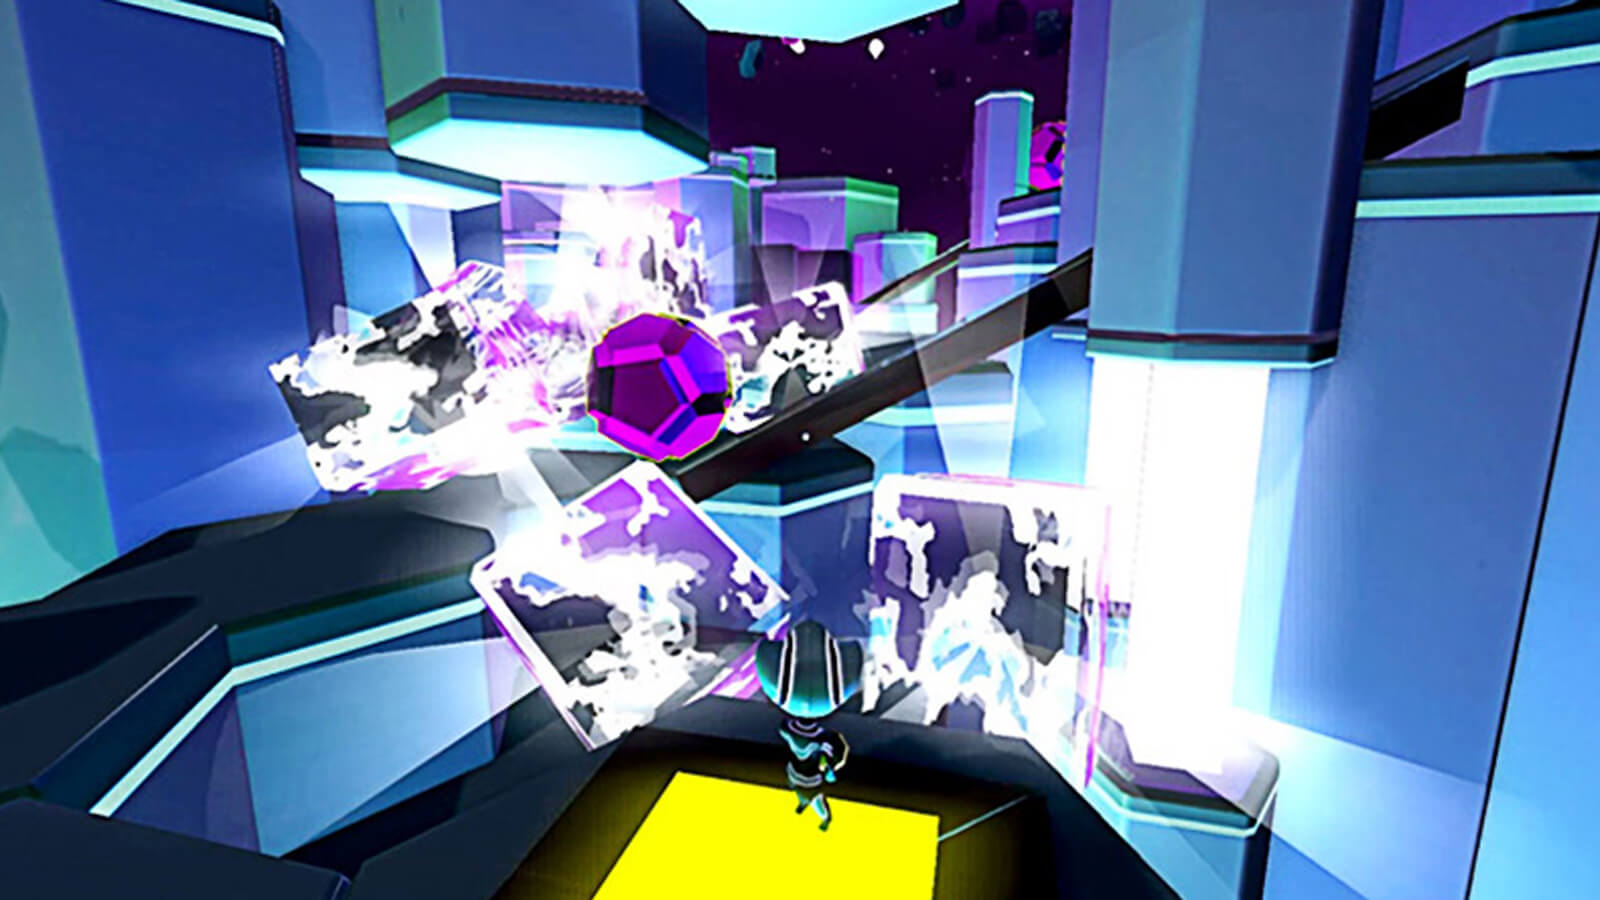 The player's character looks on as a magenta ball rolls down a ramp in front of it